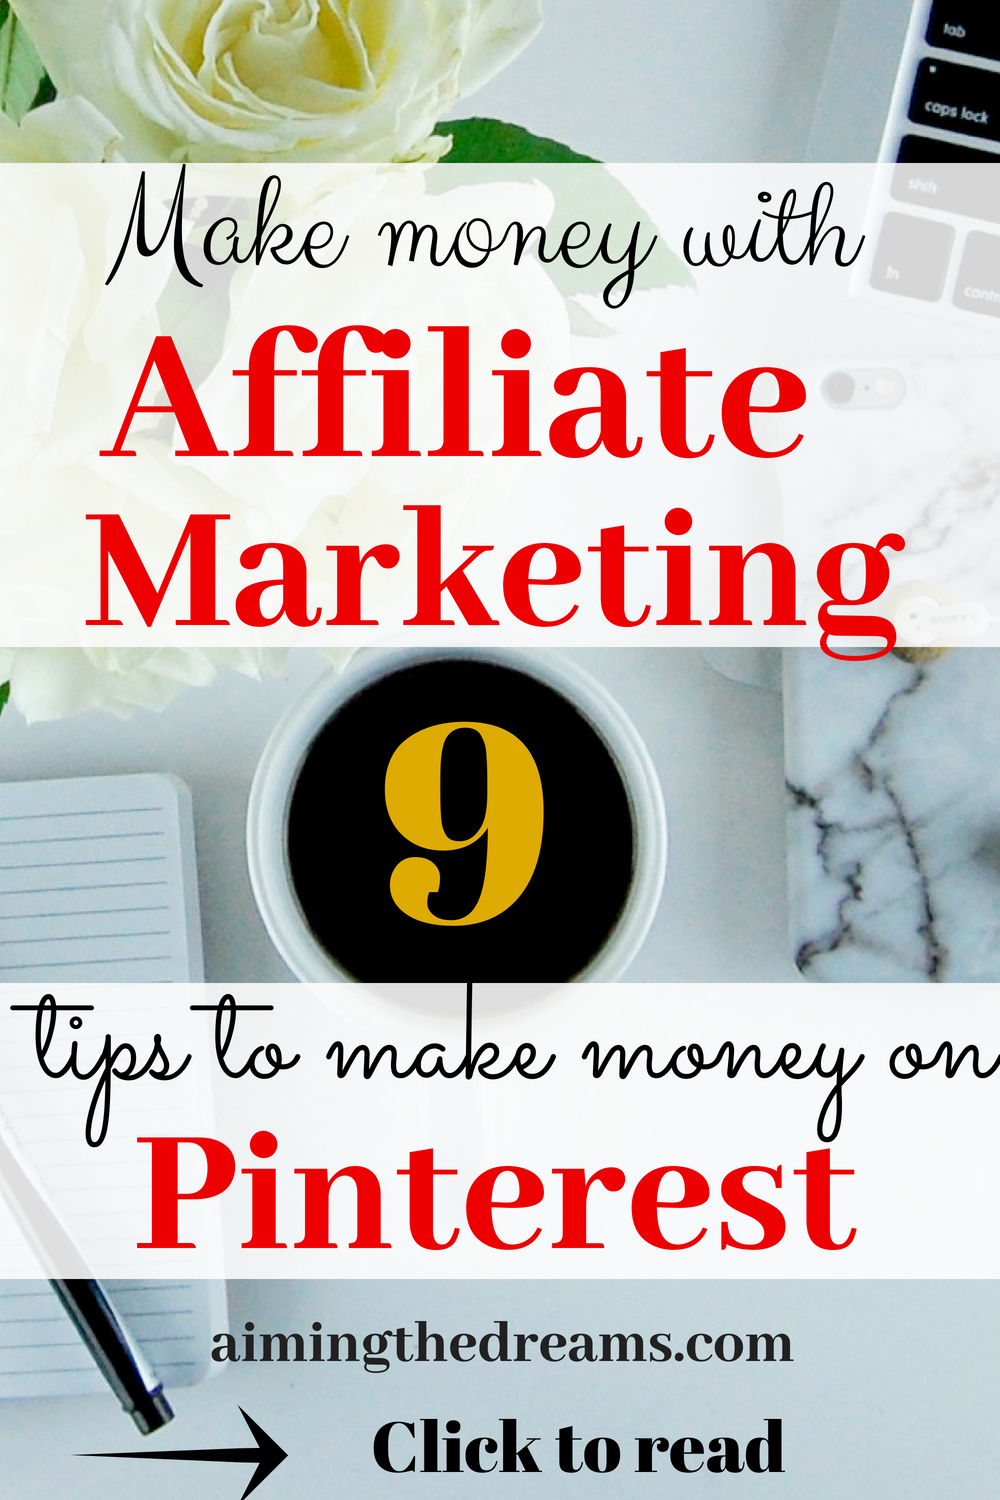 Tips to make with money with affilliate marketing on pinterest. Everybody loves passive income and it is good for stay at home mums. Click to read